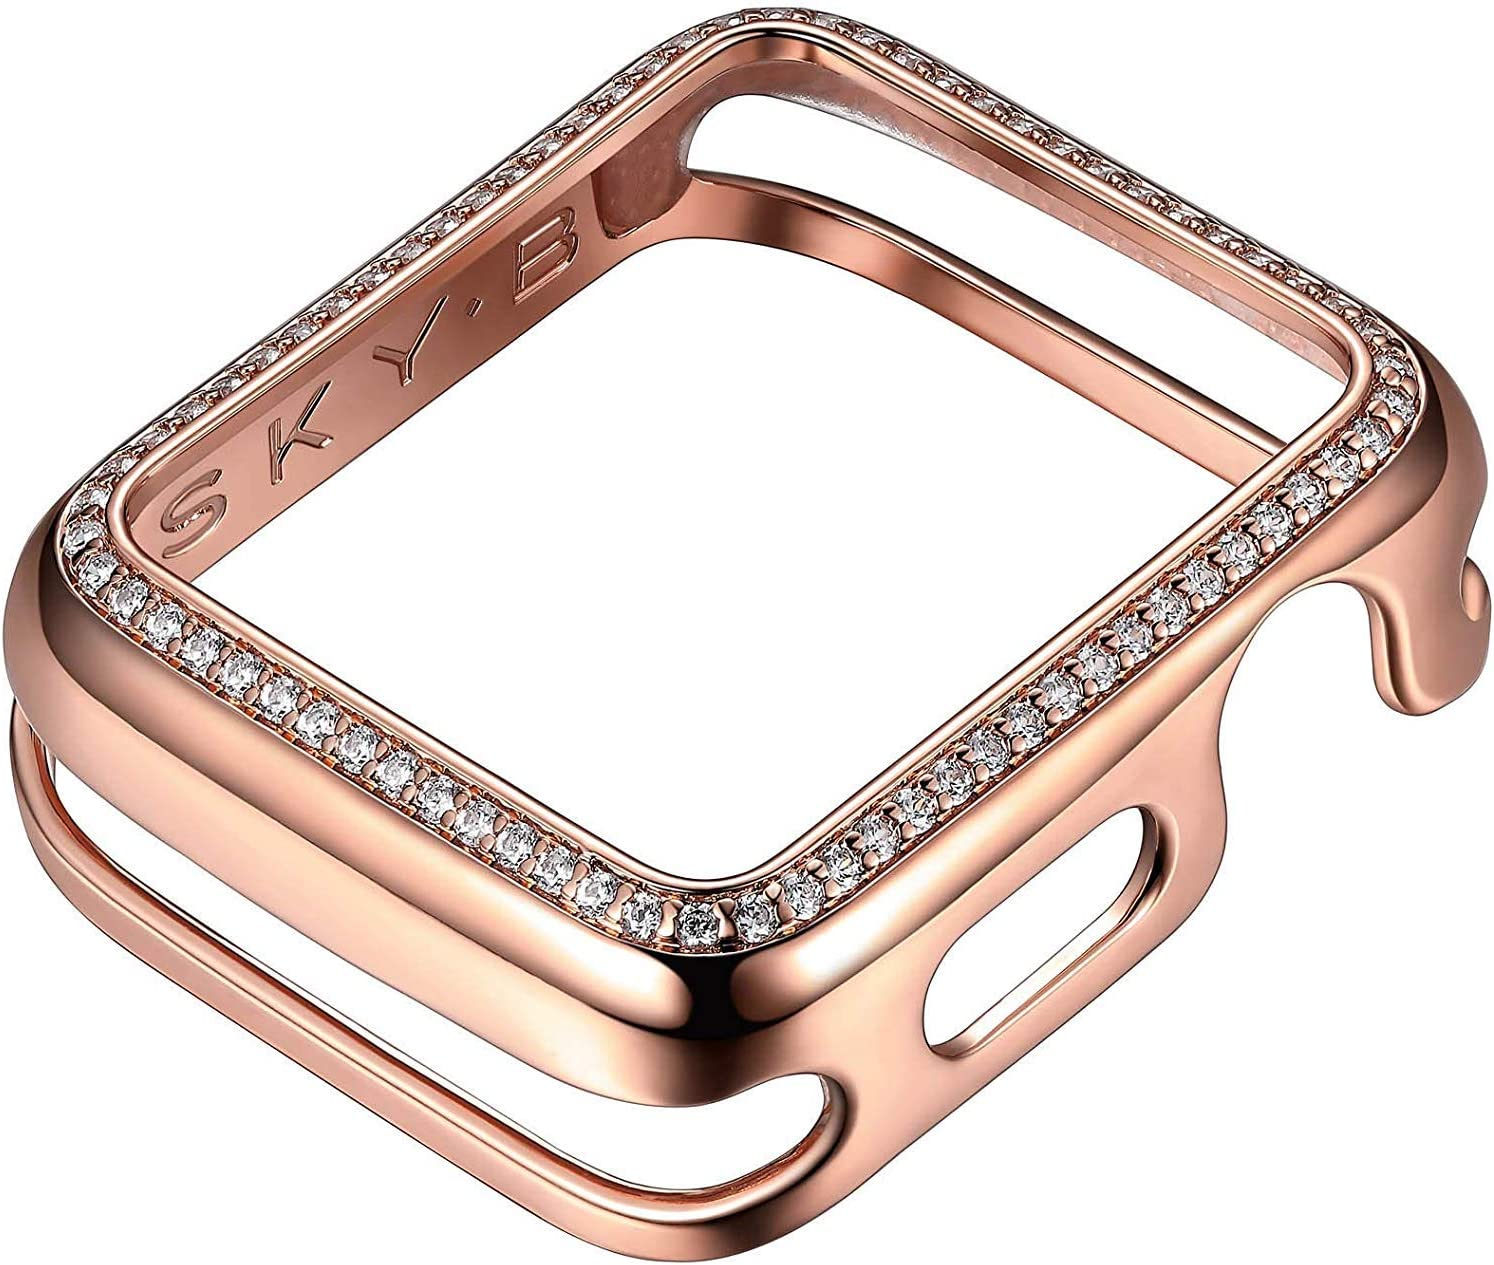 SKYB Halo Rose Gold Protective Jewelry Case for Apple Watch Series 1, 2, 3, 4, 5 Devices - 38mm